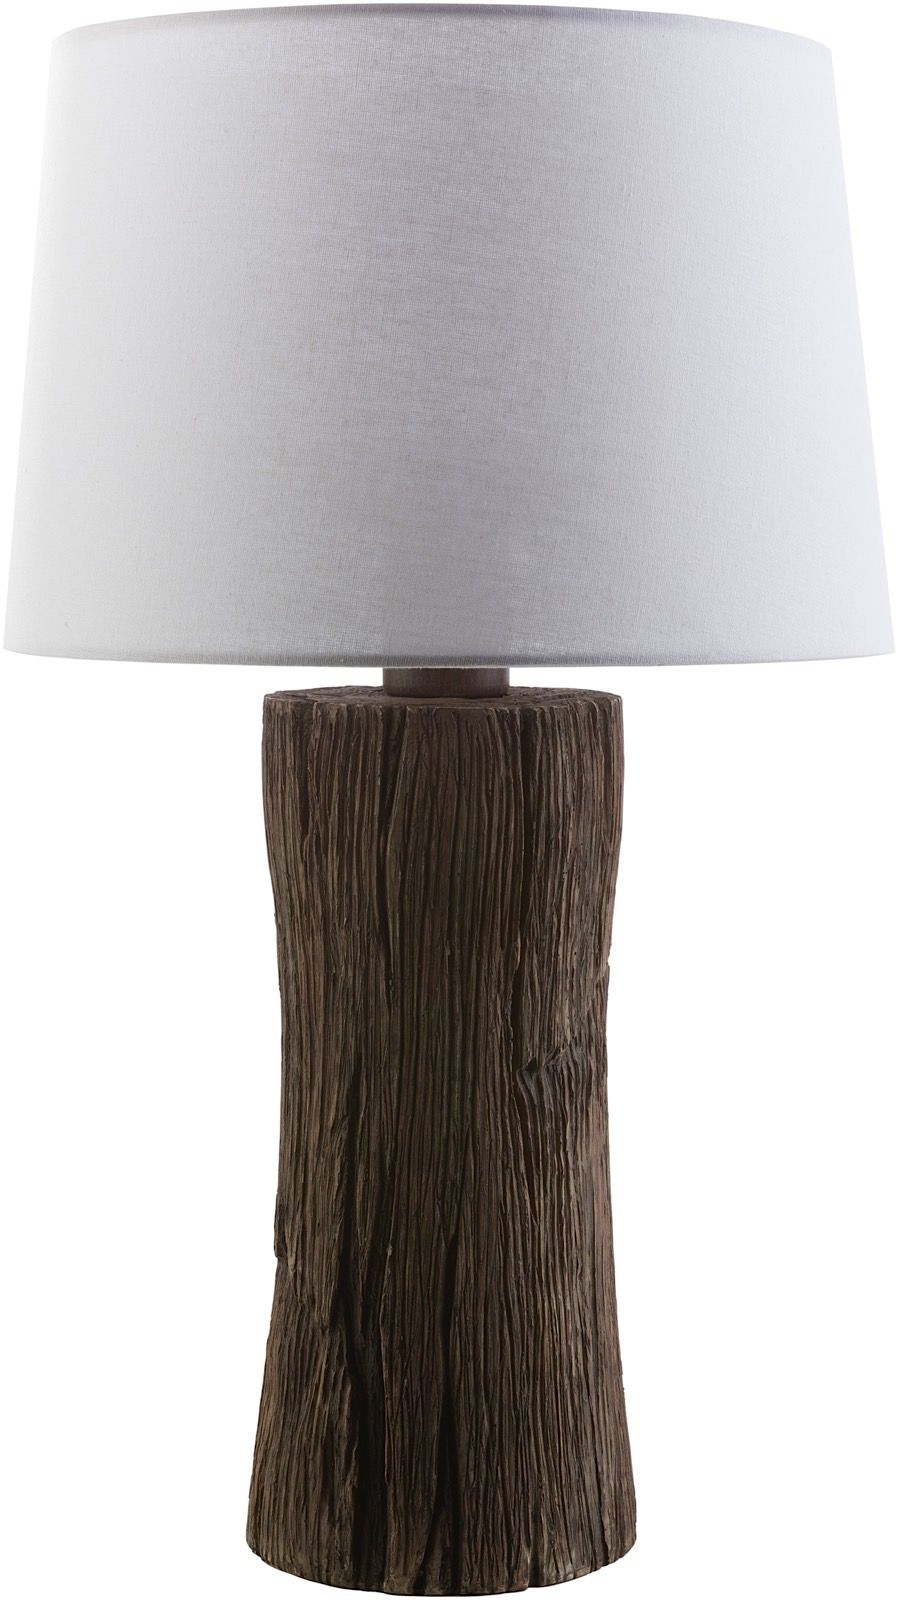 surya sycamore novelty table lamp